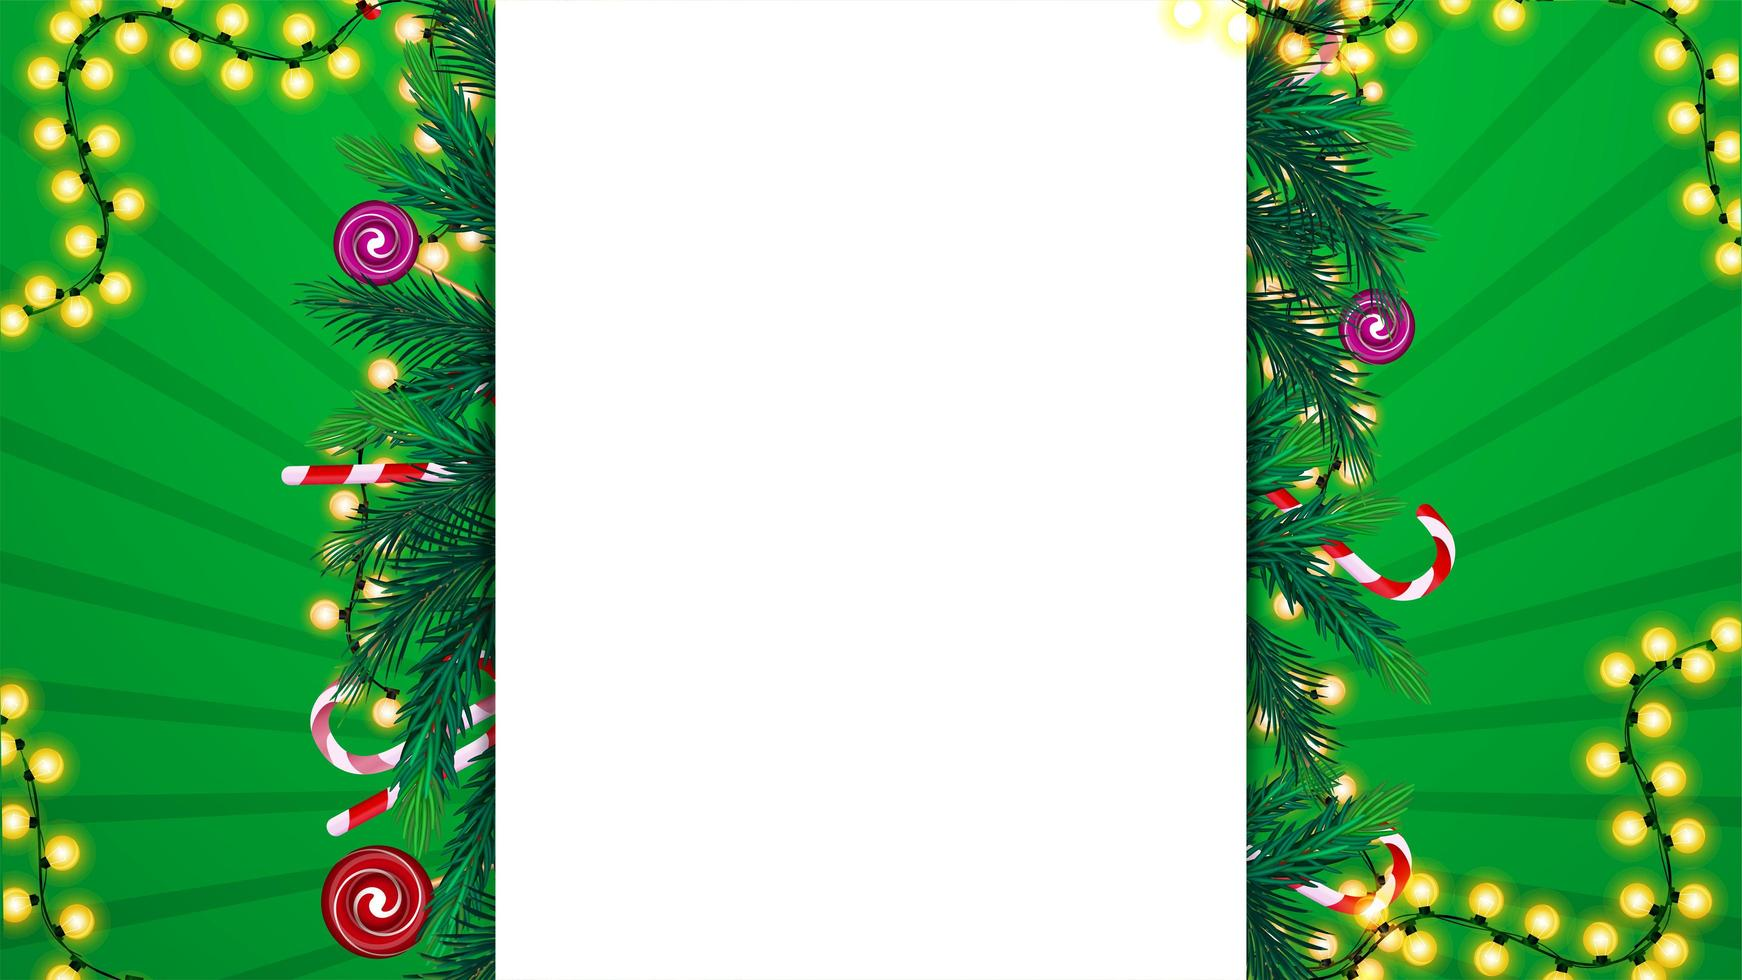 Christmas template with white large blank stripe in the middle decorated with Christmas tree branches, candy canes and garlands vector